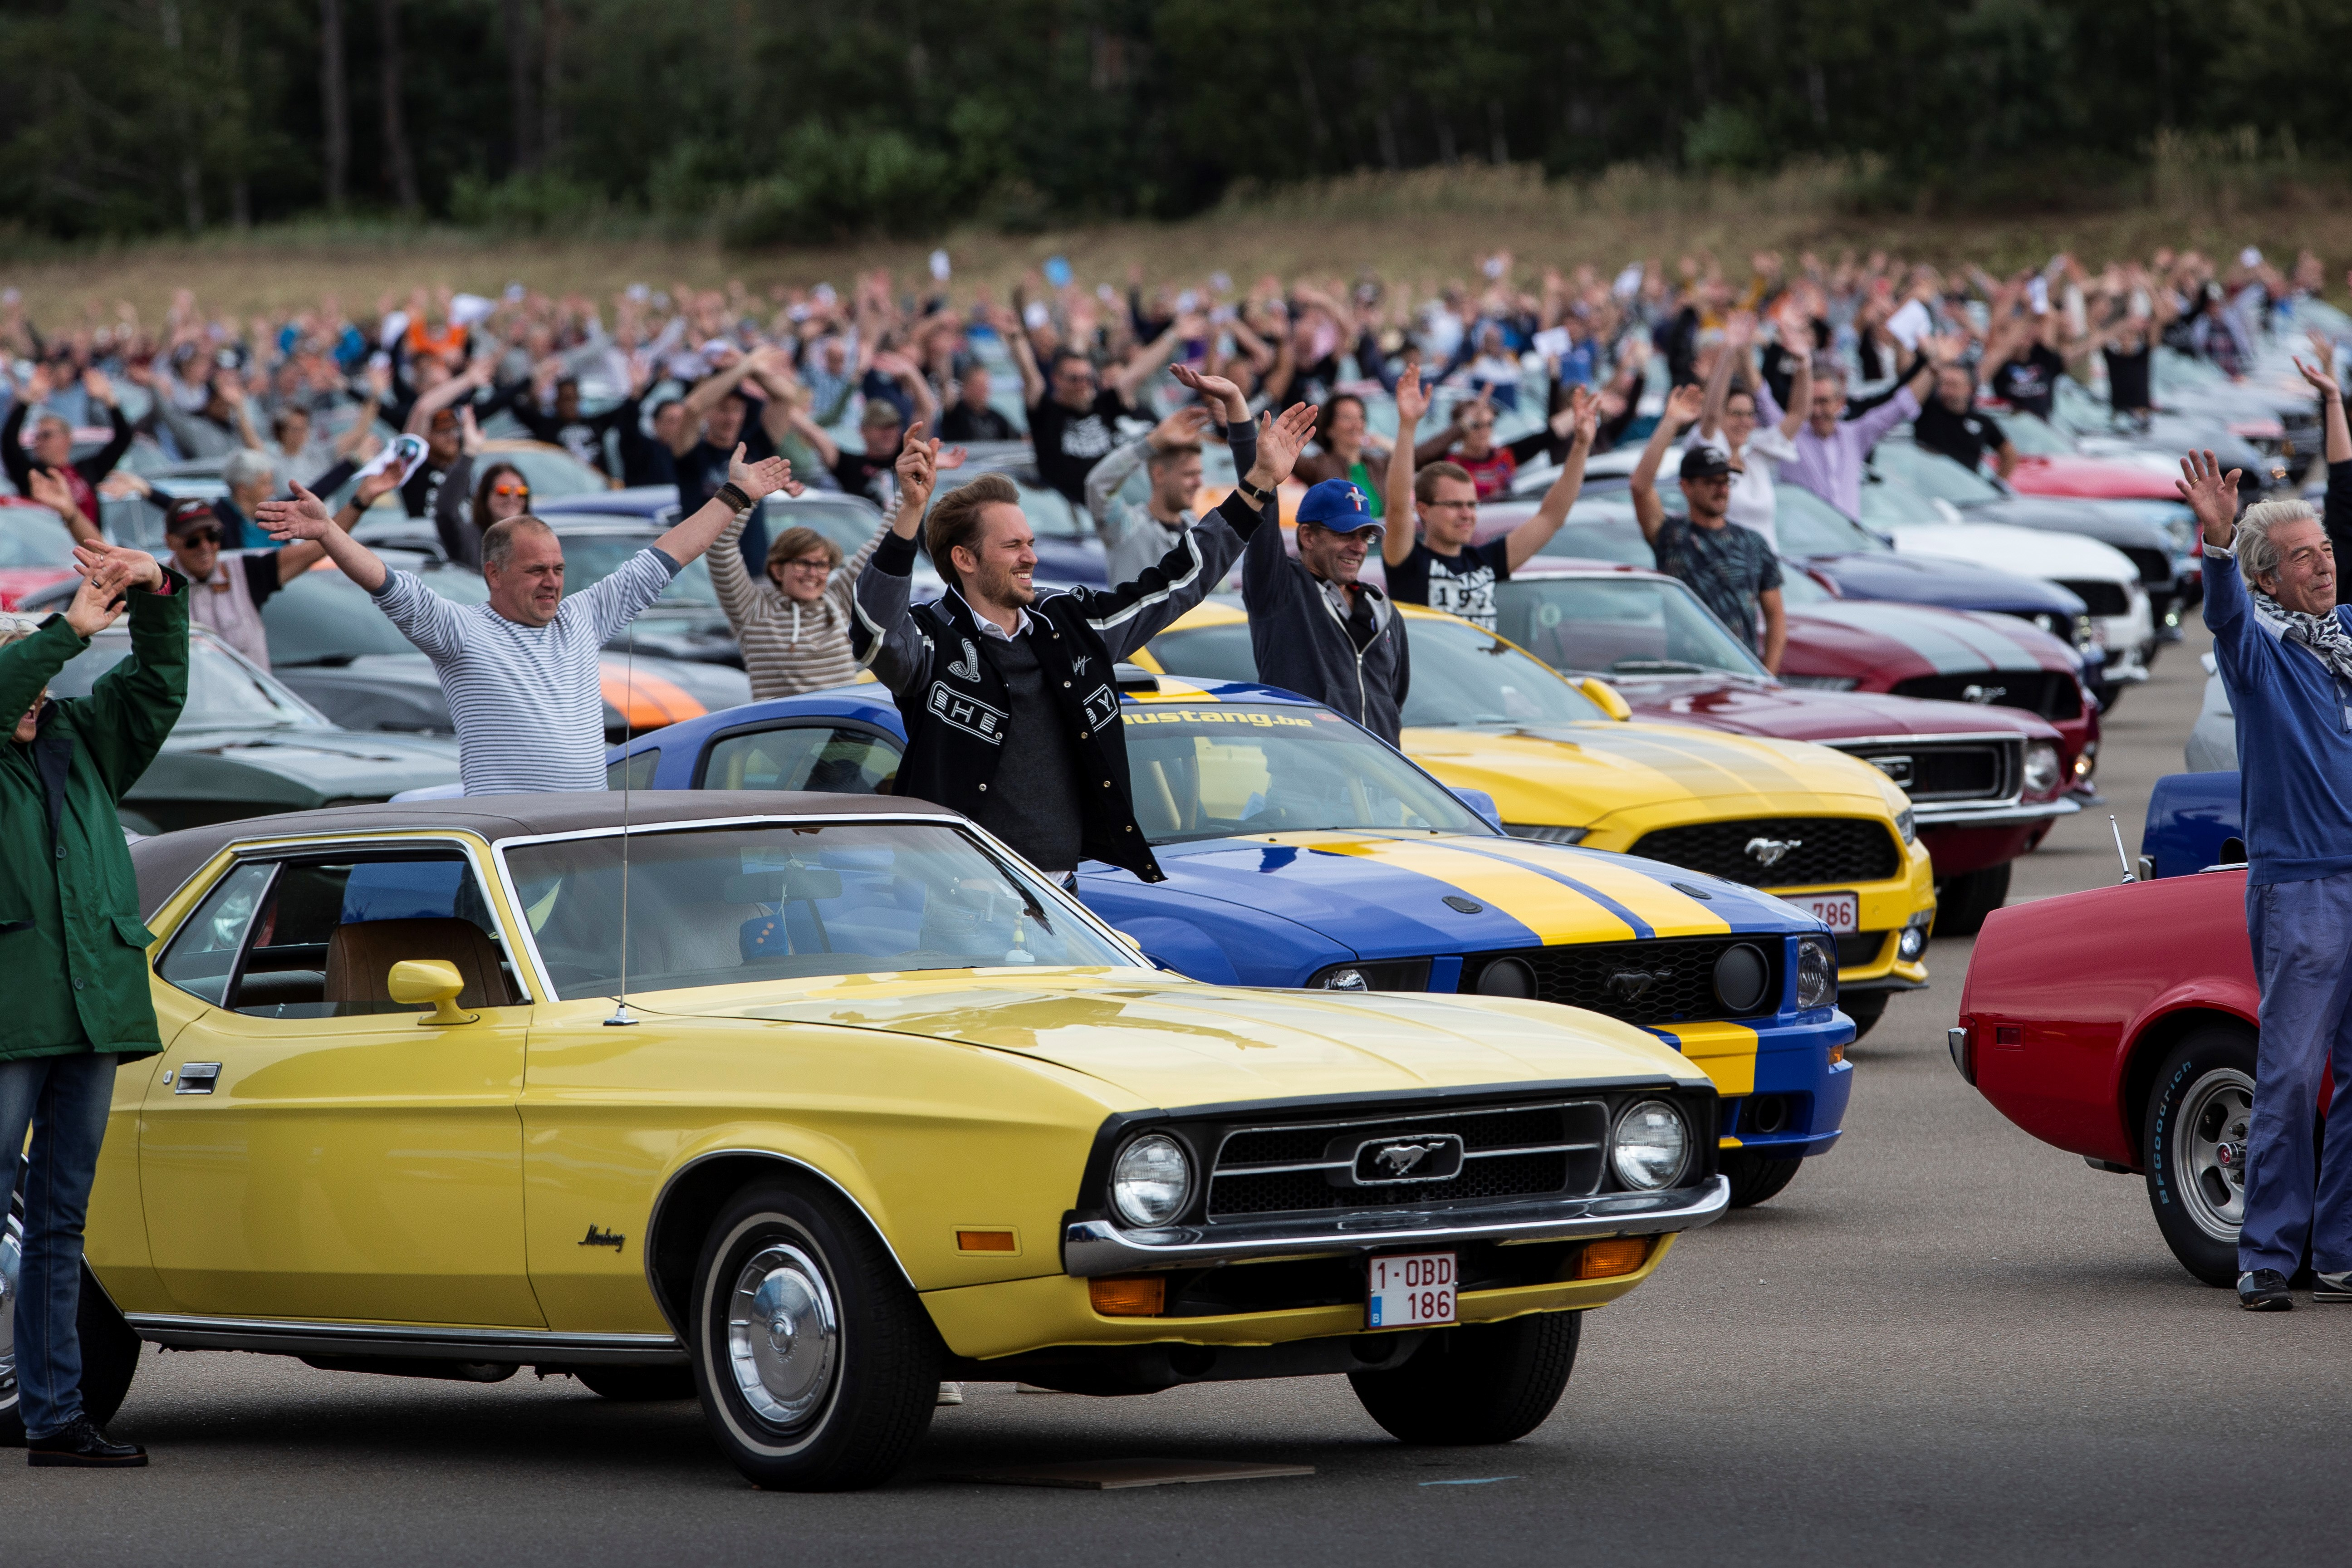 Ford Europe claims record for most Mustangs in one place